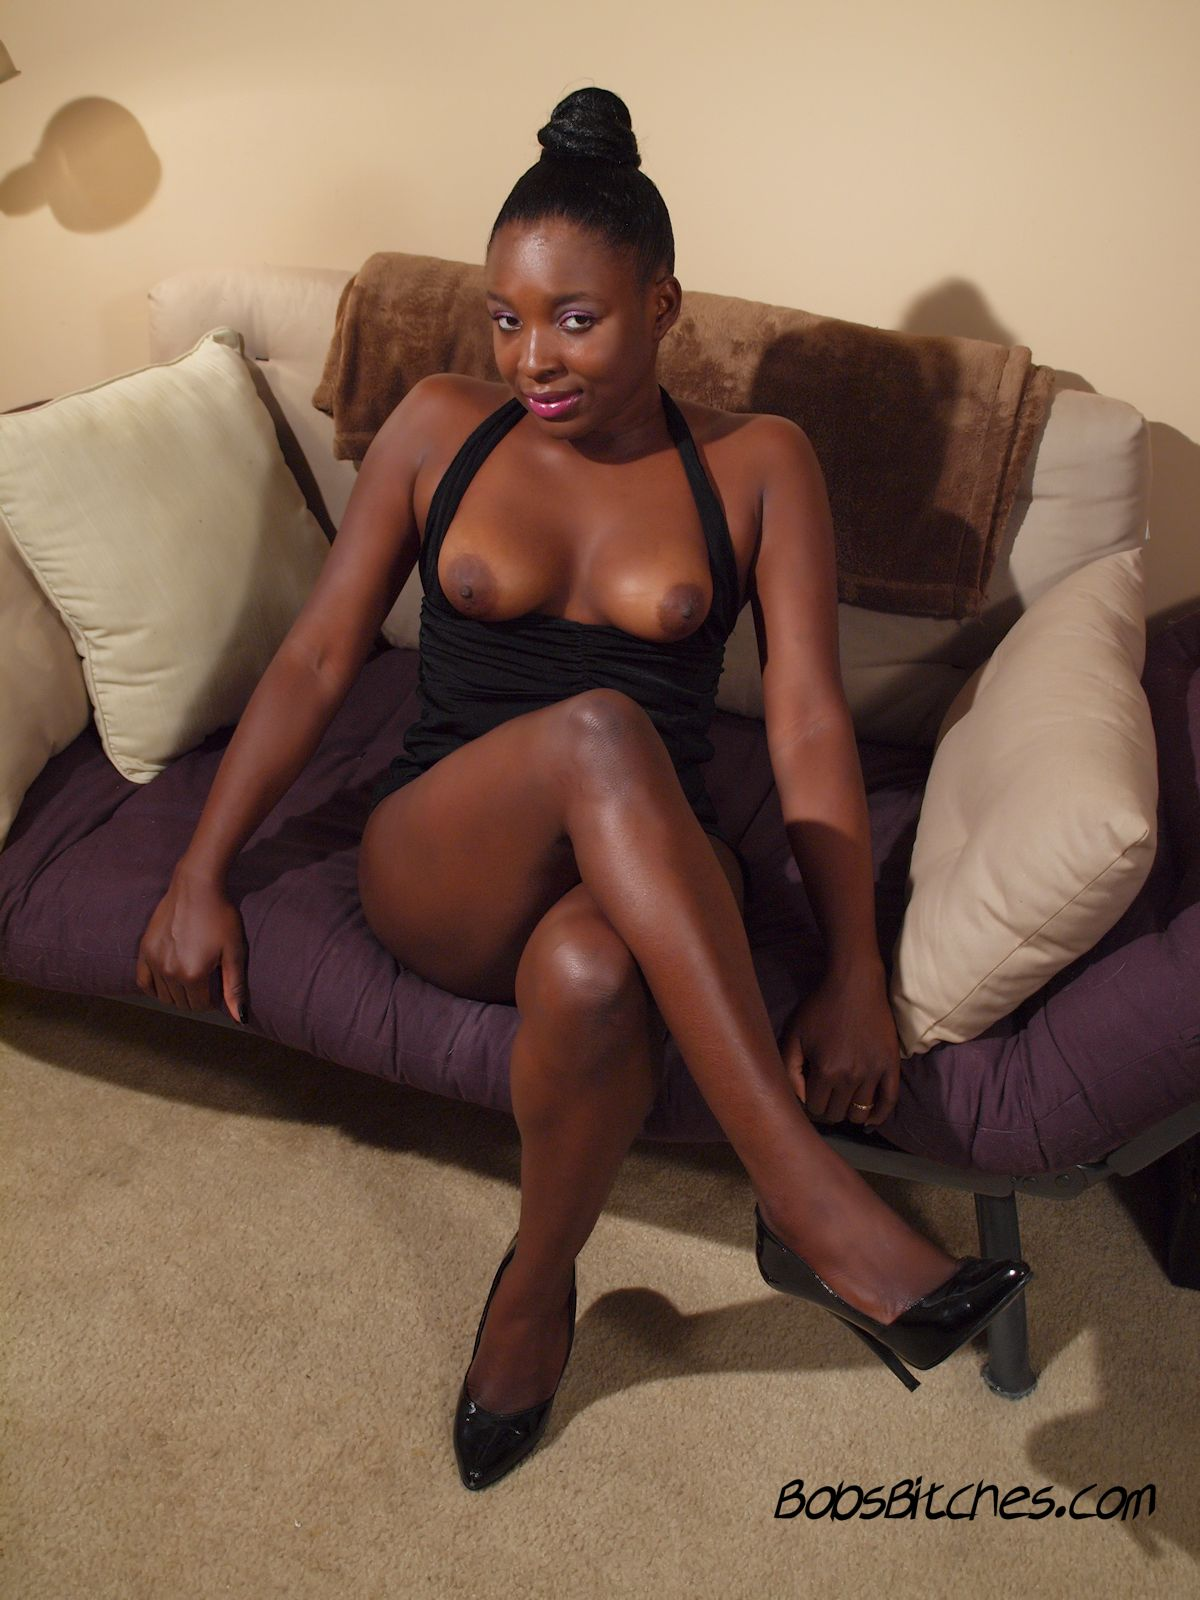 High heeled, slim ebony glamour babe, Jasmine, shows off her sexy legs and perky tits.